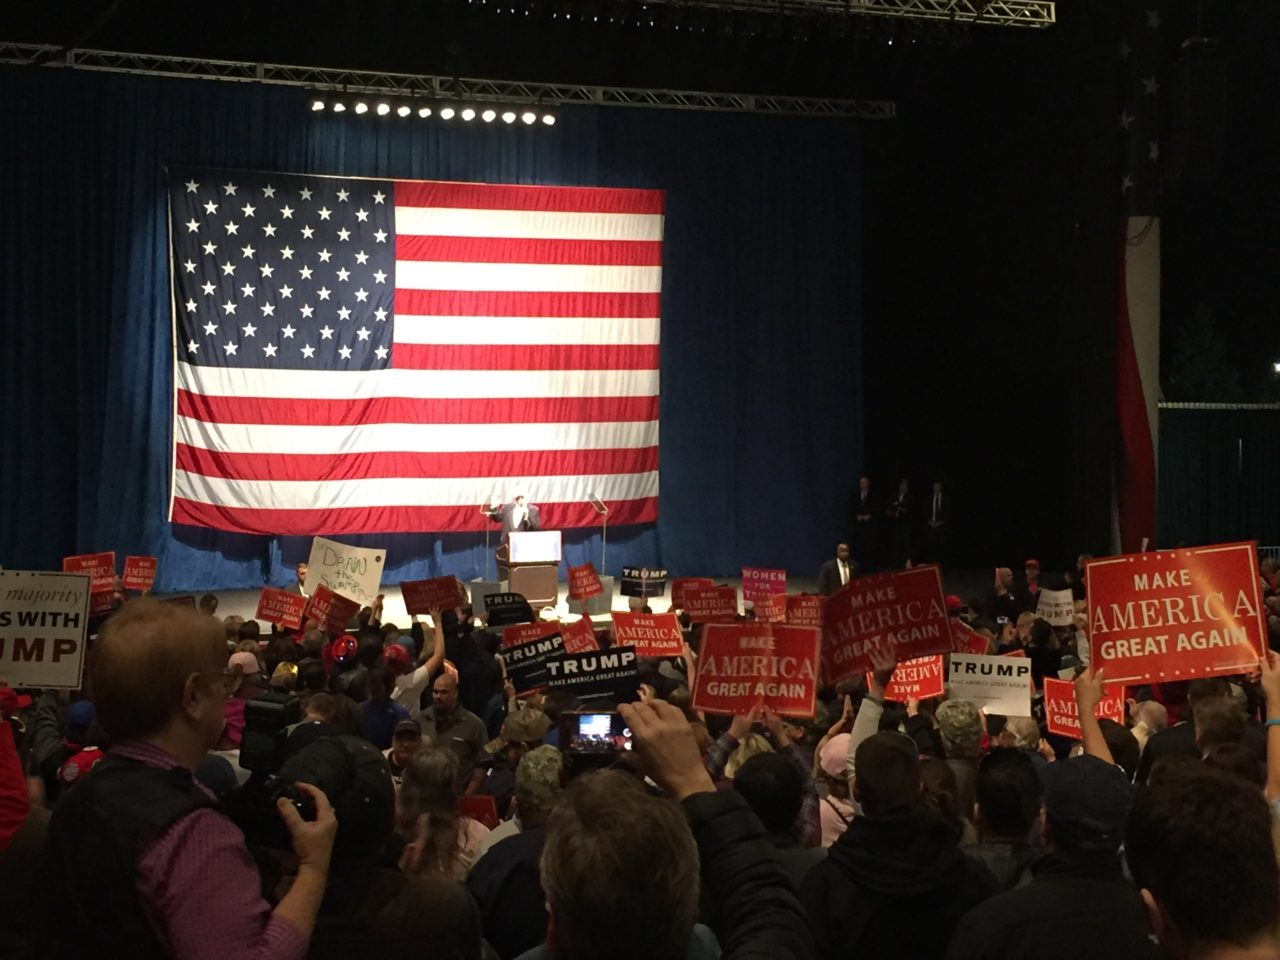 Trump and Flag Sterling Heights Michigan Rally (Joel Pollak / Breitbart News)